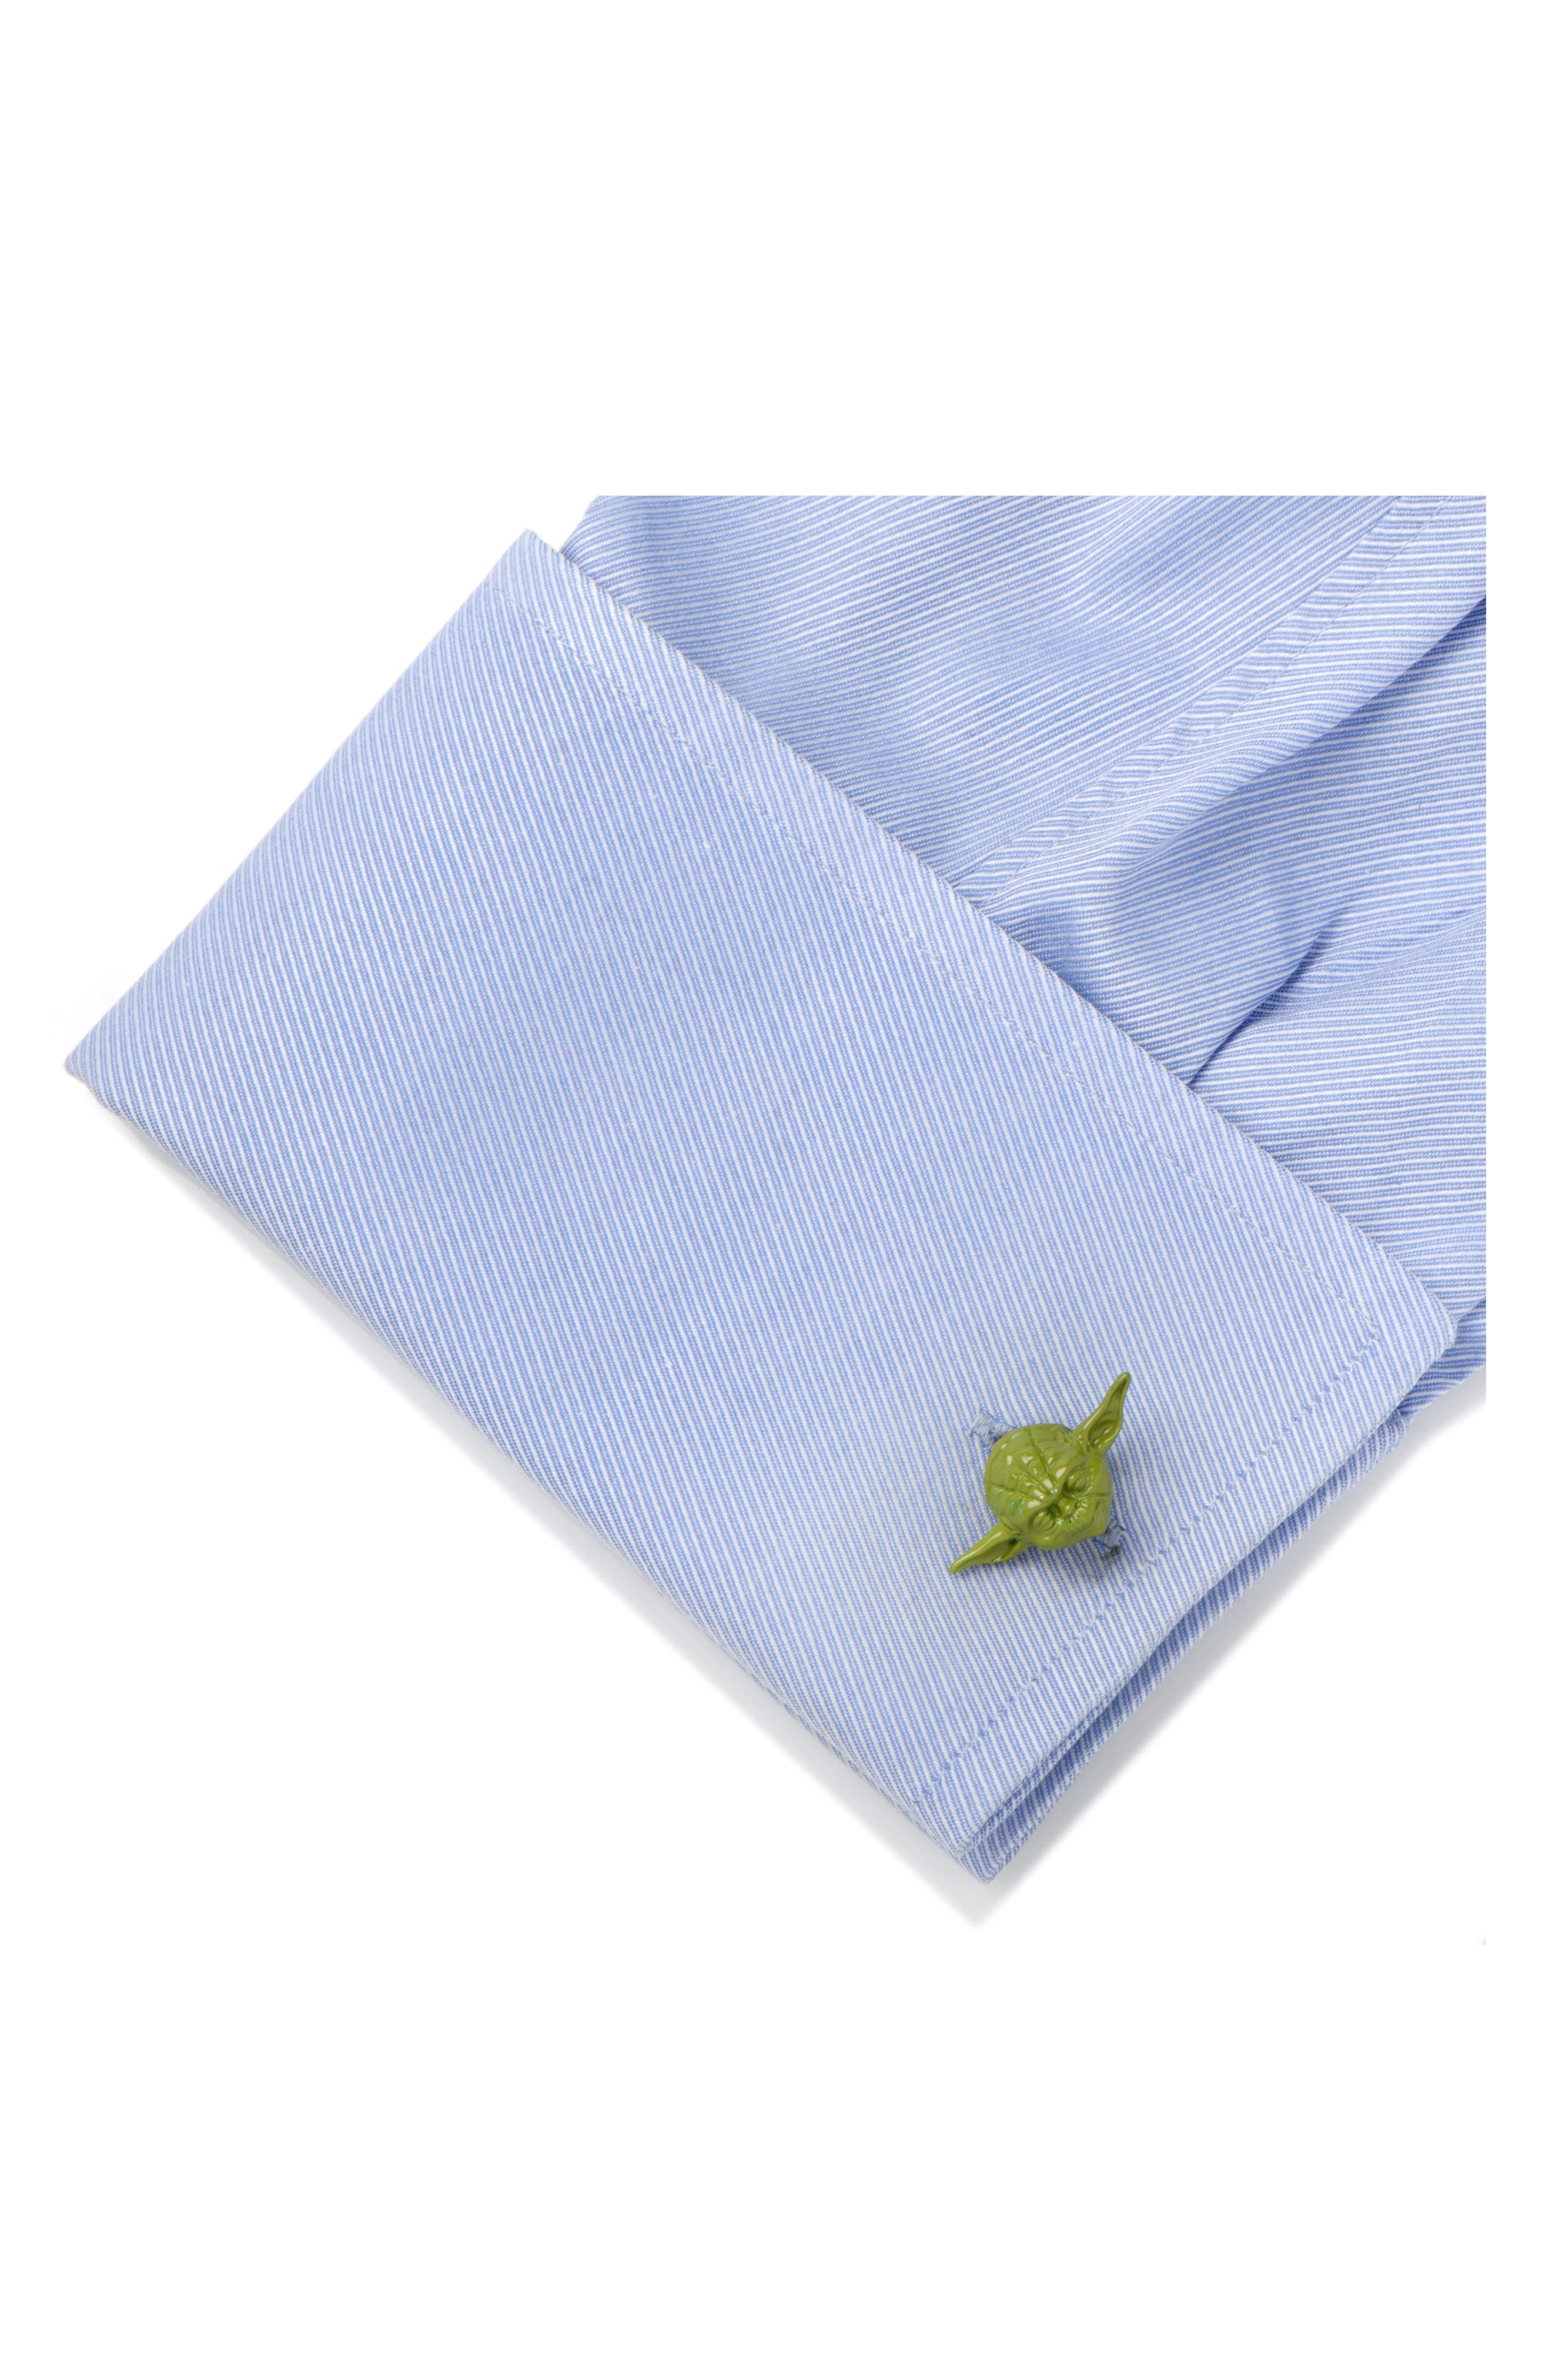 Star Wars<sup>™</sup> Yoda 3D Cuff Links,                             Alternate thumbnail 2, color,                             300